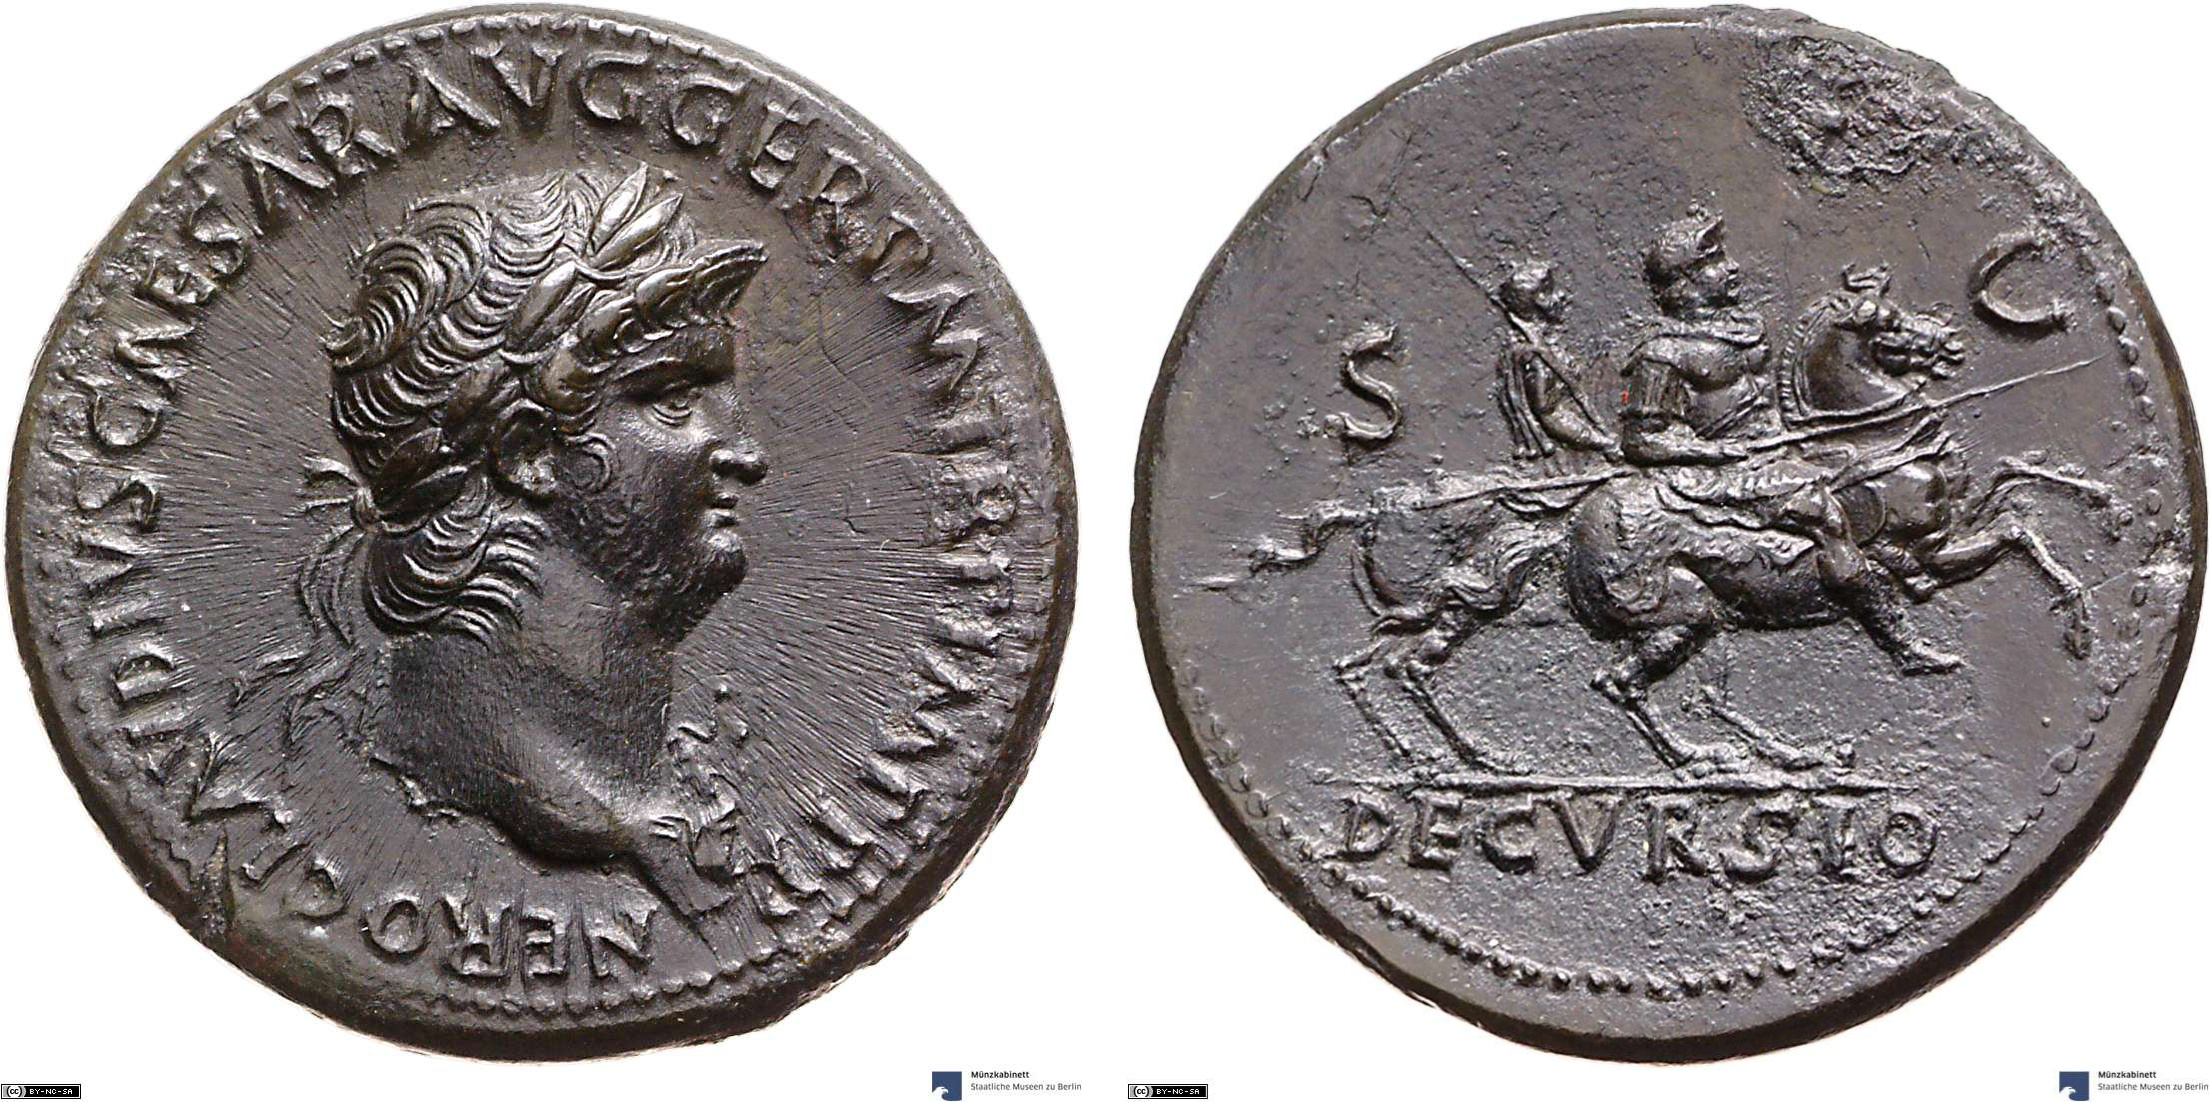 Sestertius showing Nero on horseback on reverse, minted in 64 AD under Nero, Roman Empire